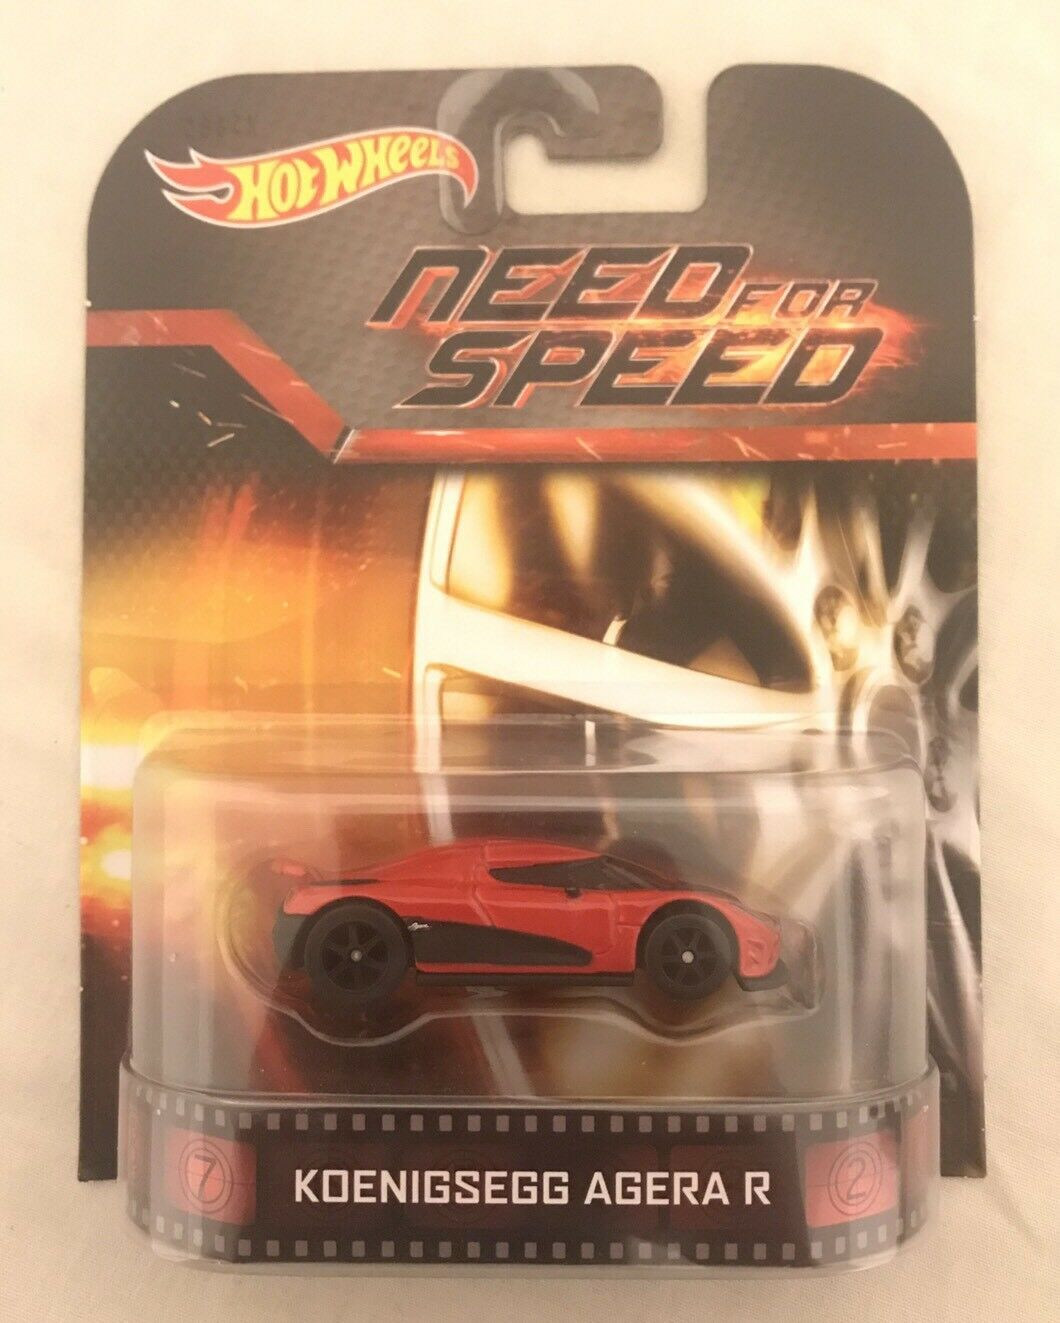 Hotwheels Retro Entertainment Koenigsegg Agera R VERY RARE HTF RR 1 64 Last One